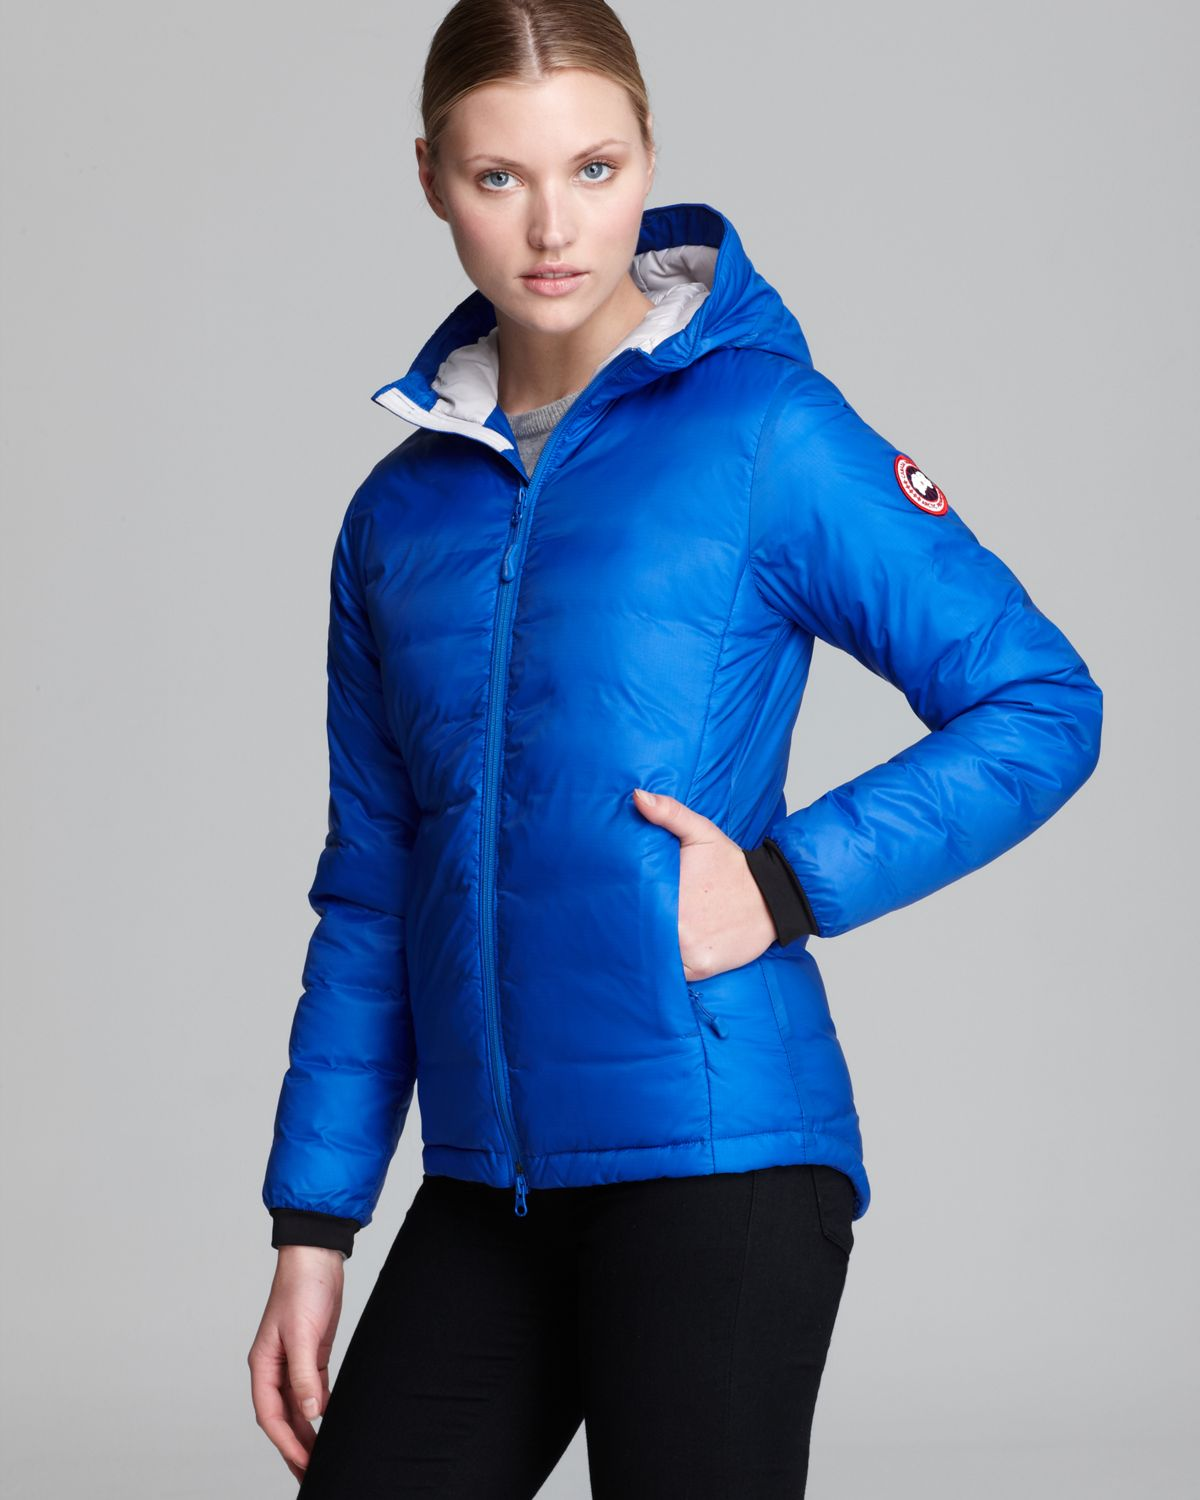 Free shipping and returns on Women's Blue Down & Puffer Coats at avupude.ml